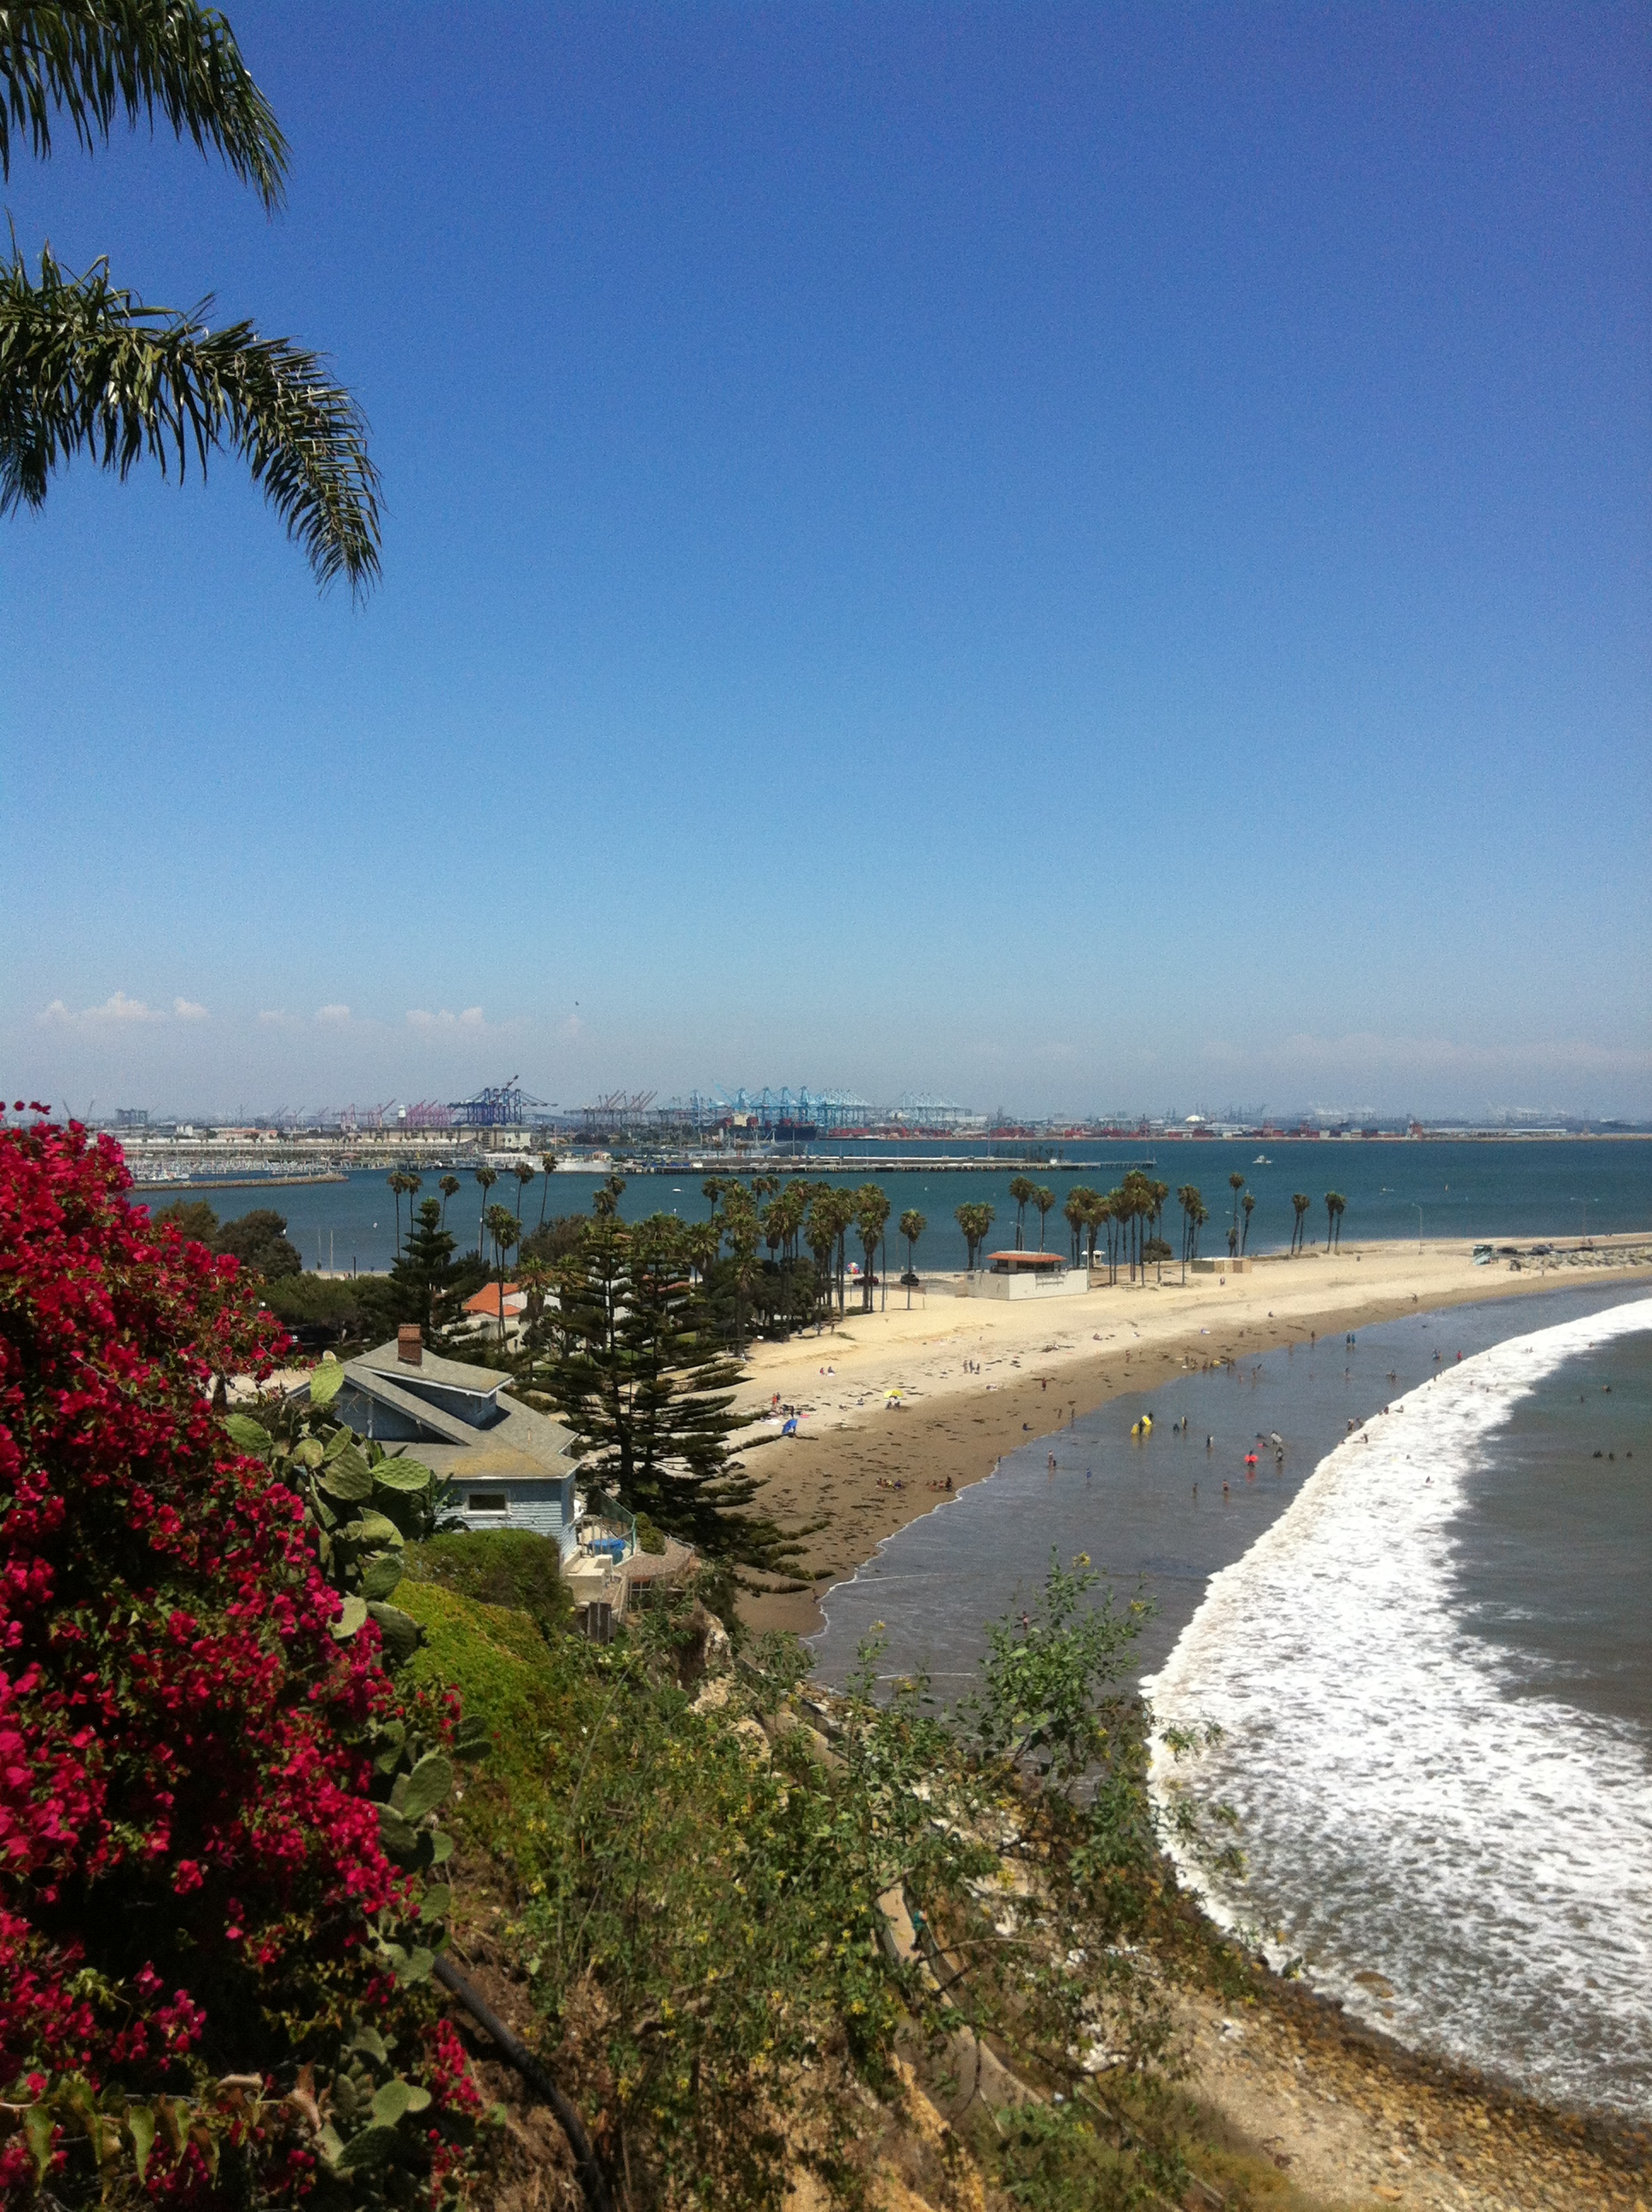 South Bay Residential Income Properties Report